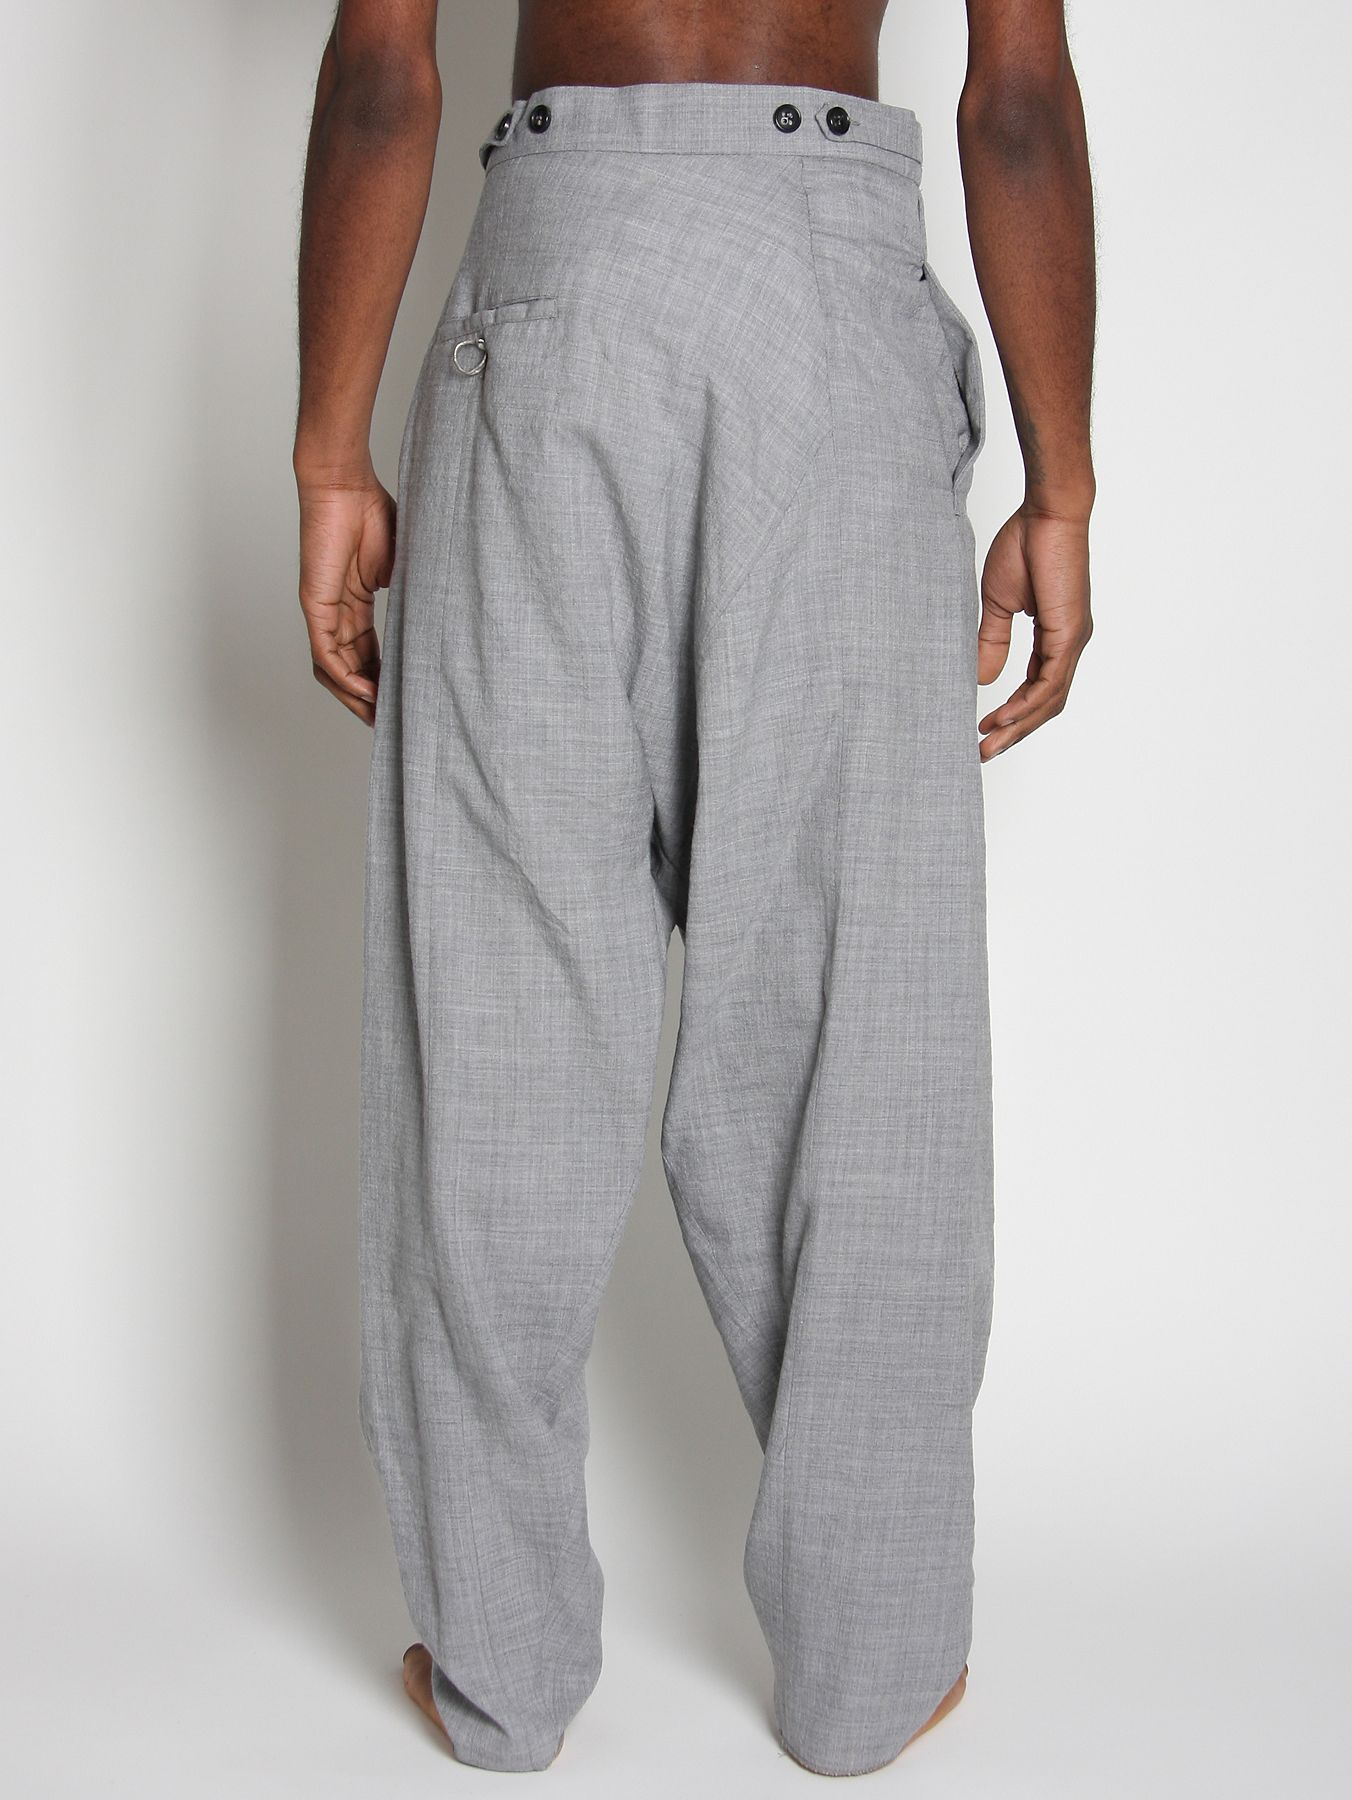 Try our Men's Tailored Fit Year'rounder Wool Trousers at Lands' End. Everything we sell is Guaranteed. Period.® Since